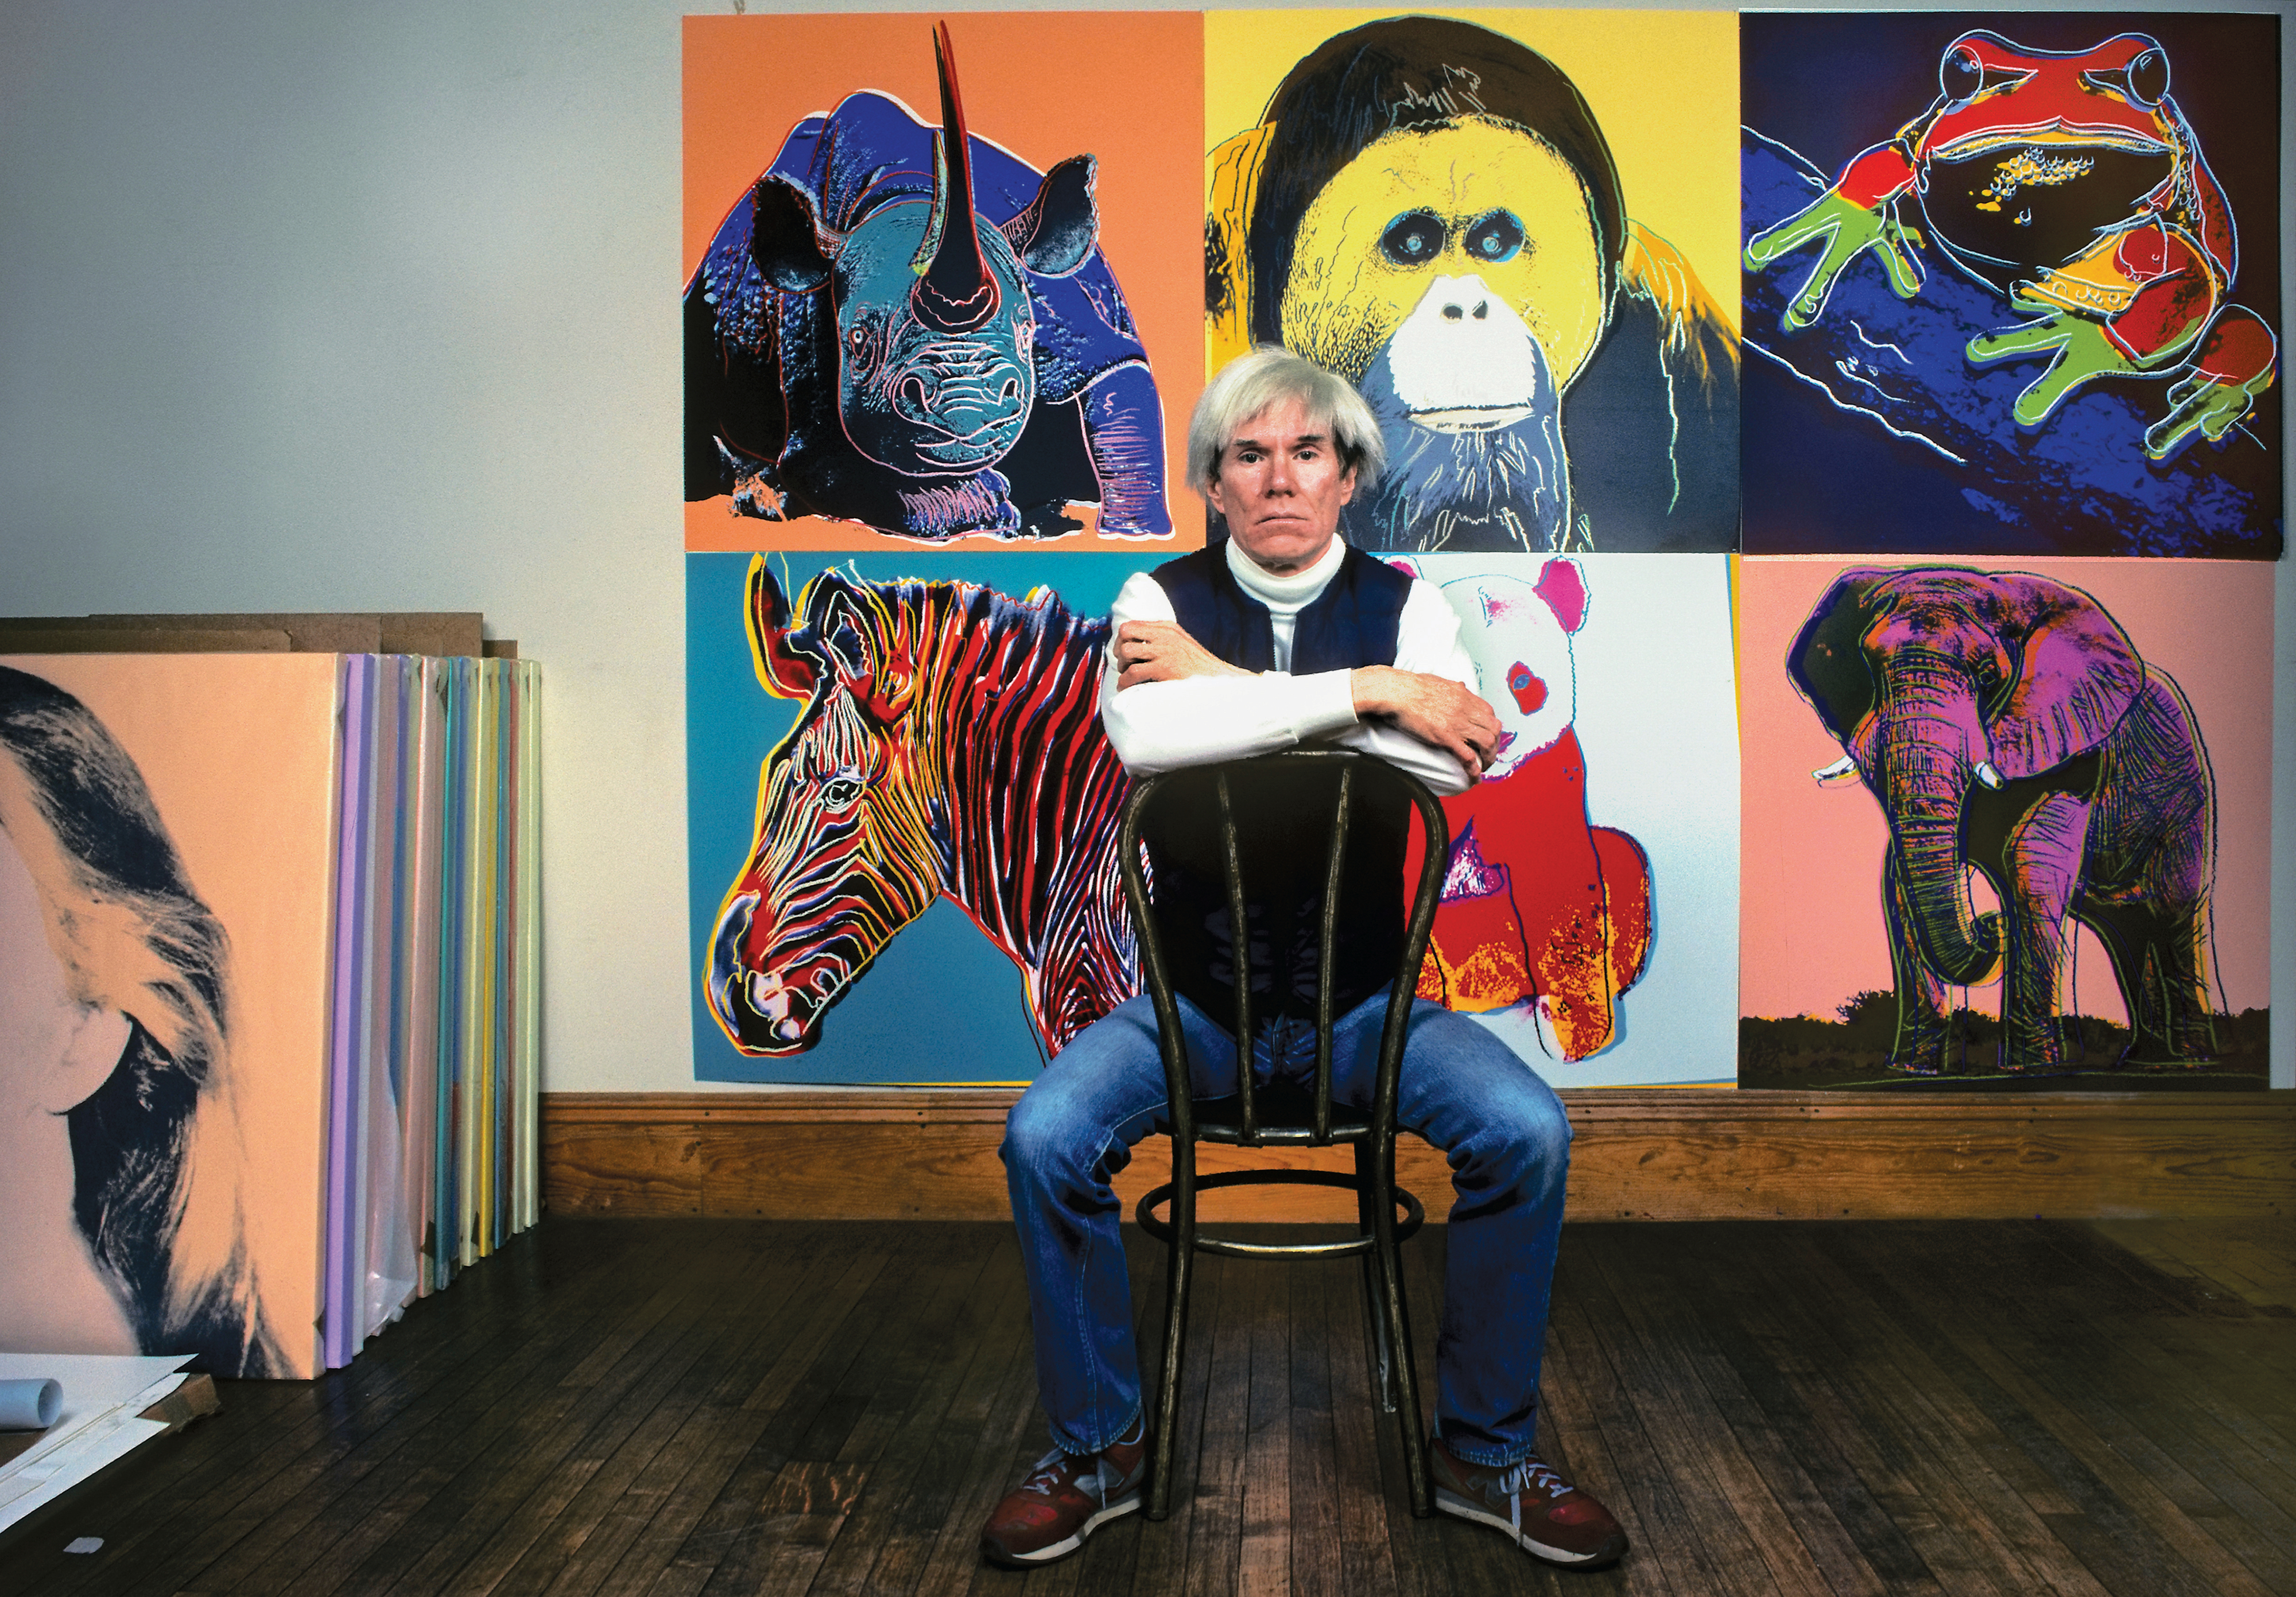 Andy Warhol The Artist Who Eclipsed Picasso